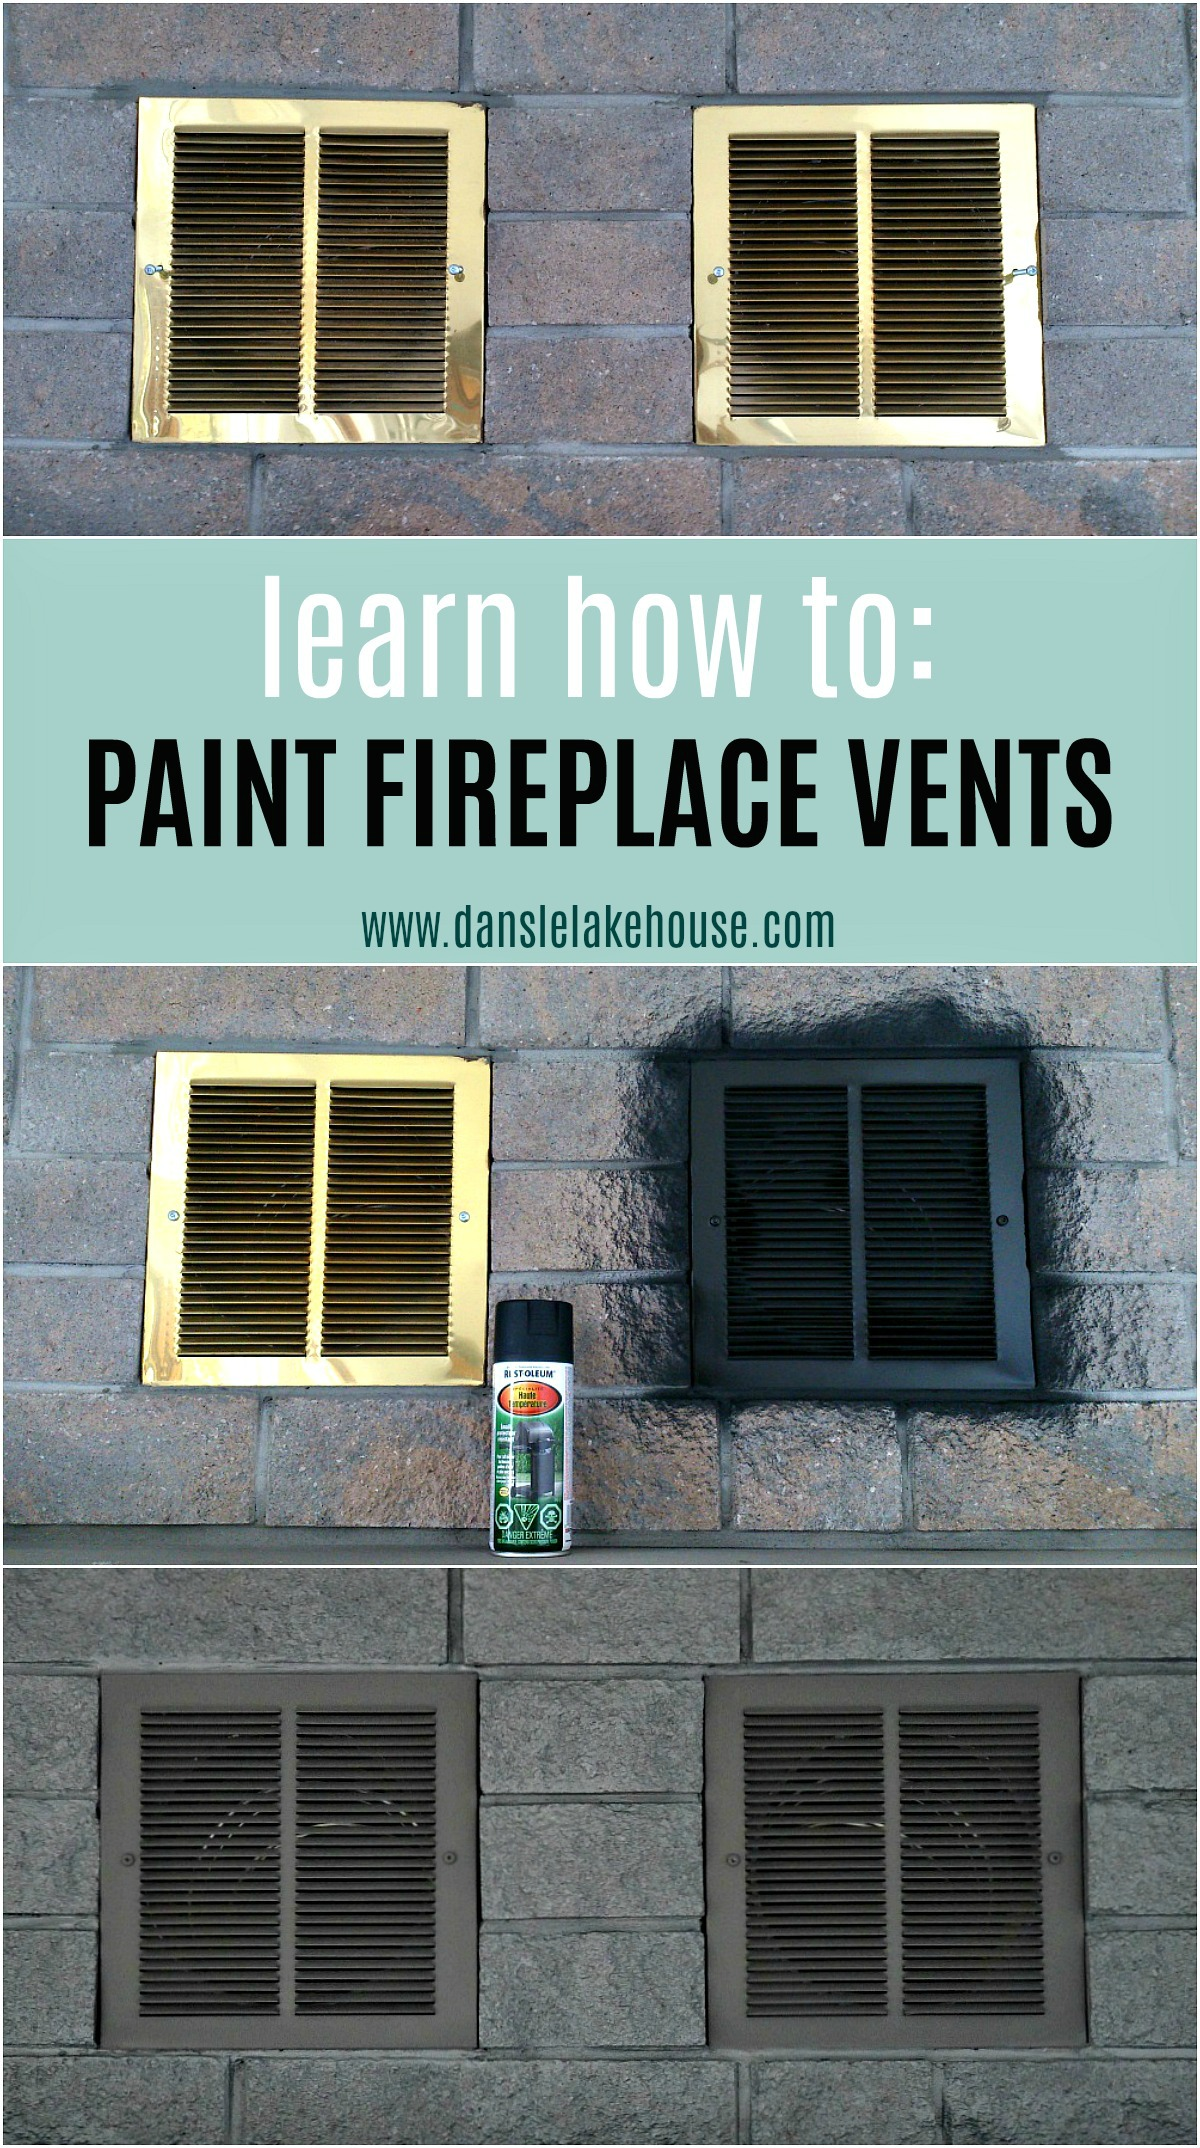 Upgrade Your Fireplace on a Budget! Learn How to Paint Fireplace Doors and Vents